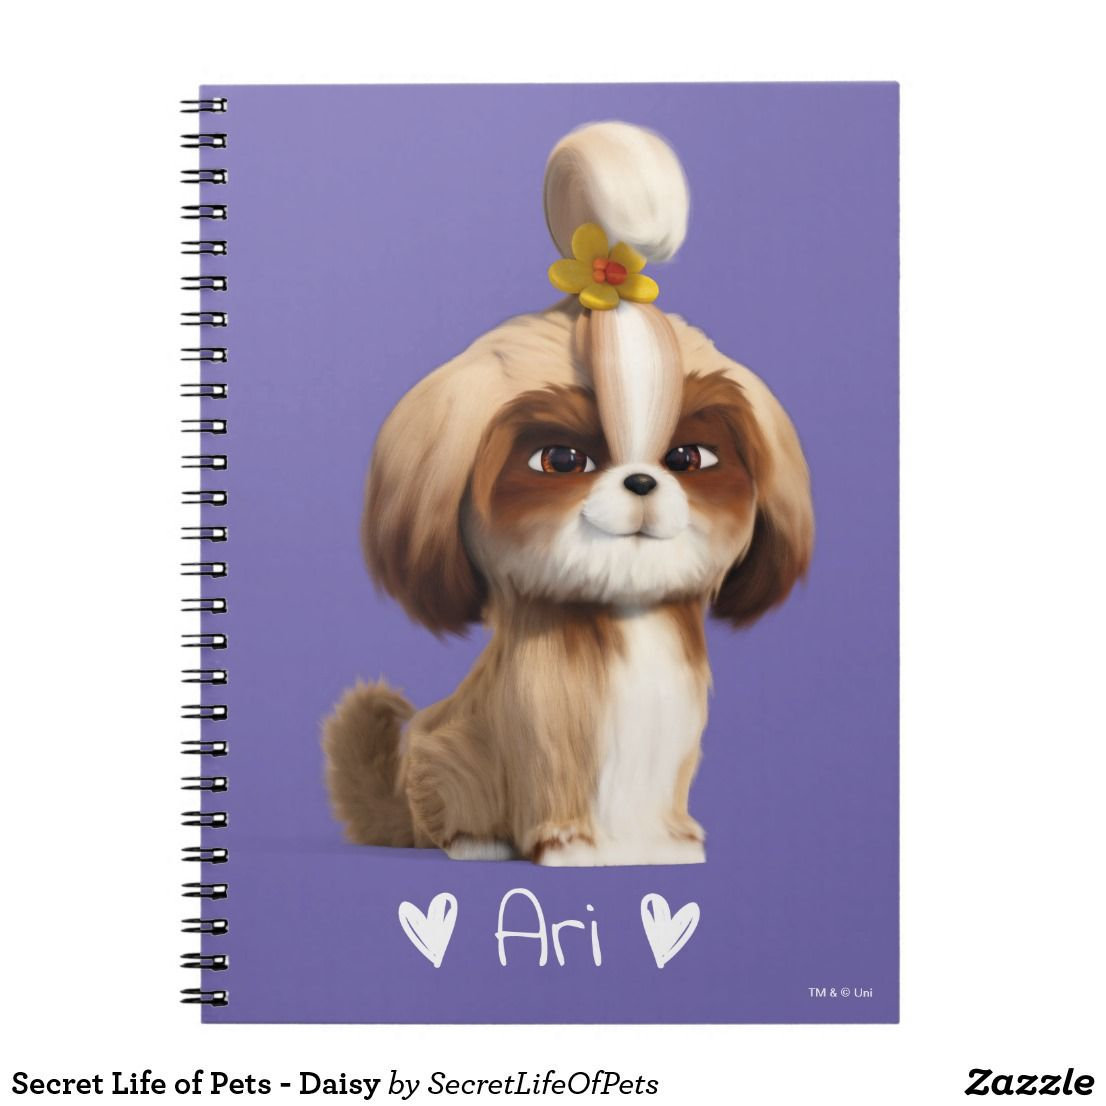 Create Your Own Spiral Photo Notebook Zazzle Com In 2020 Secret Life Of Pets Pets Movie Animal Party